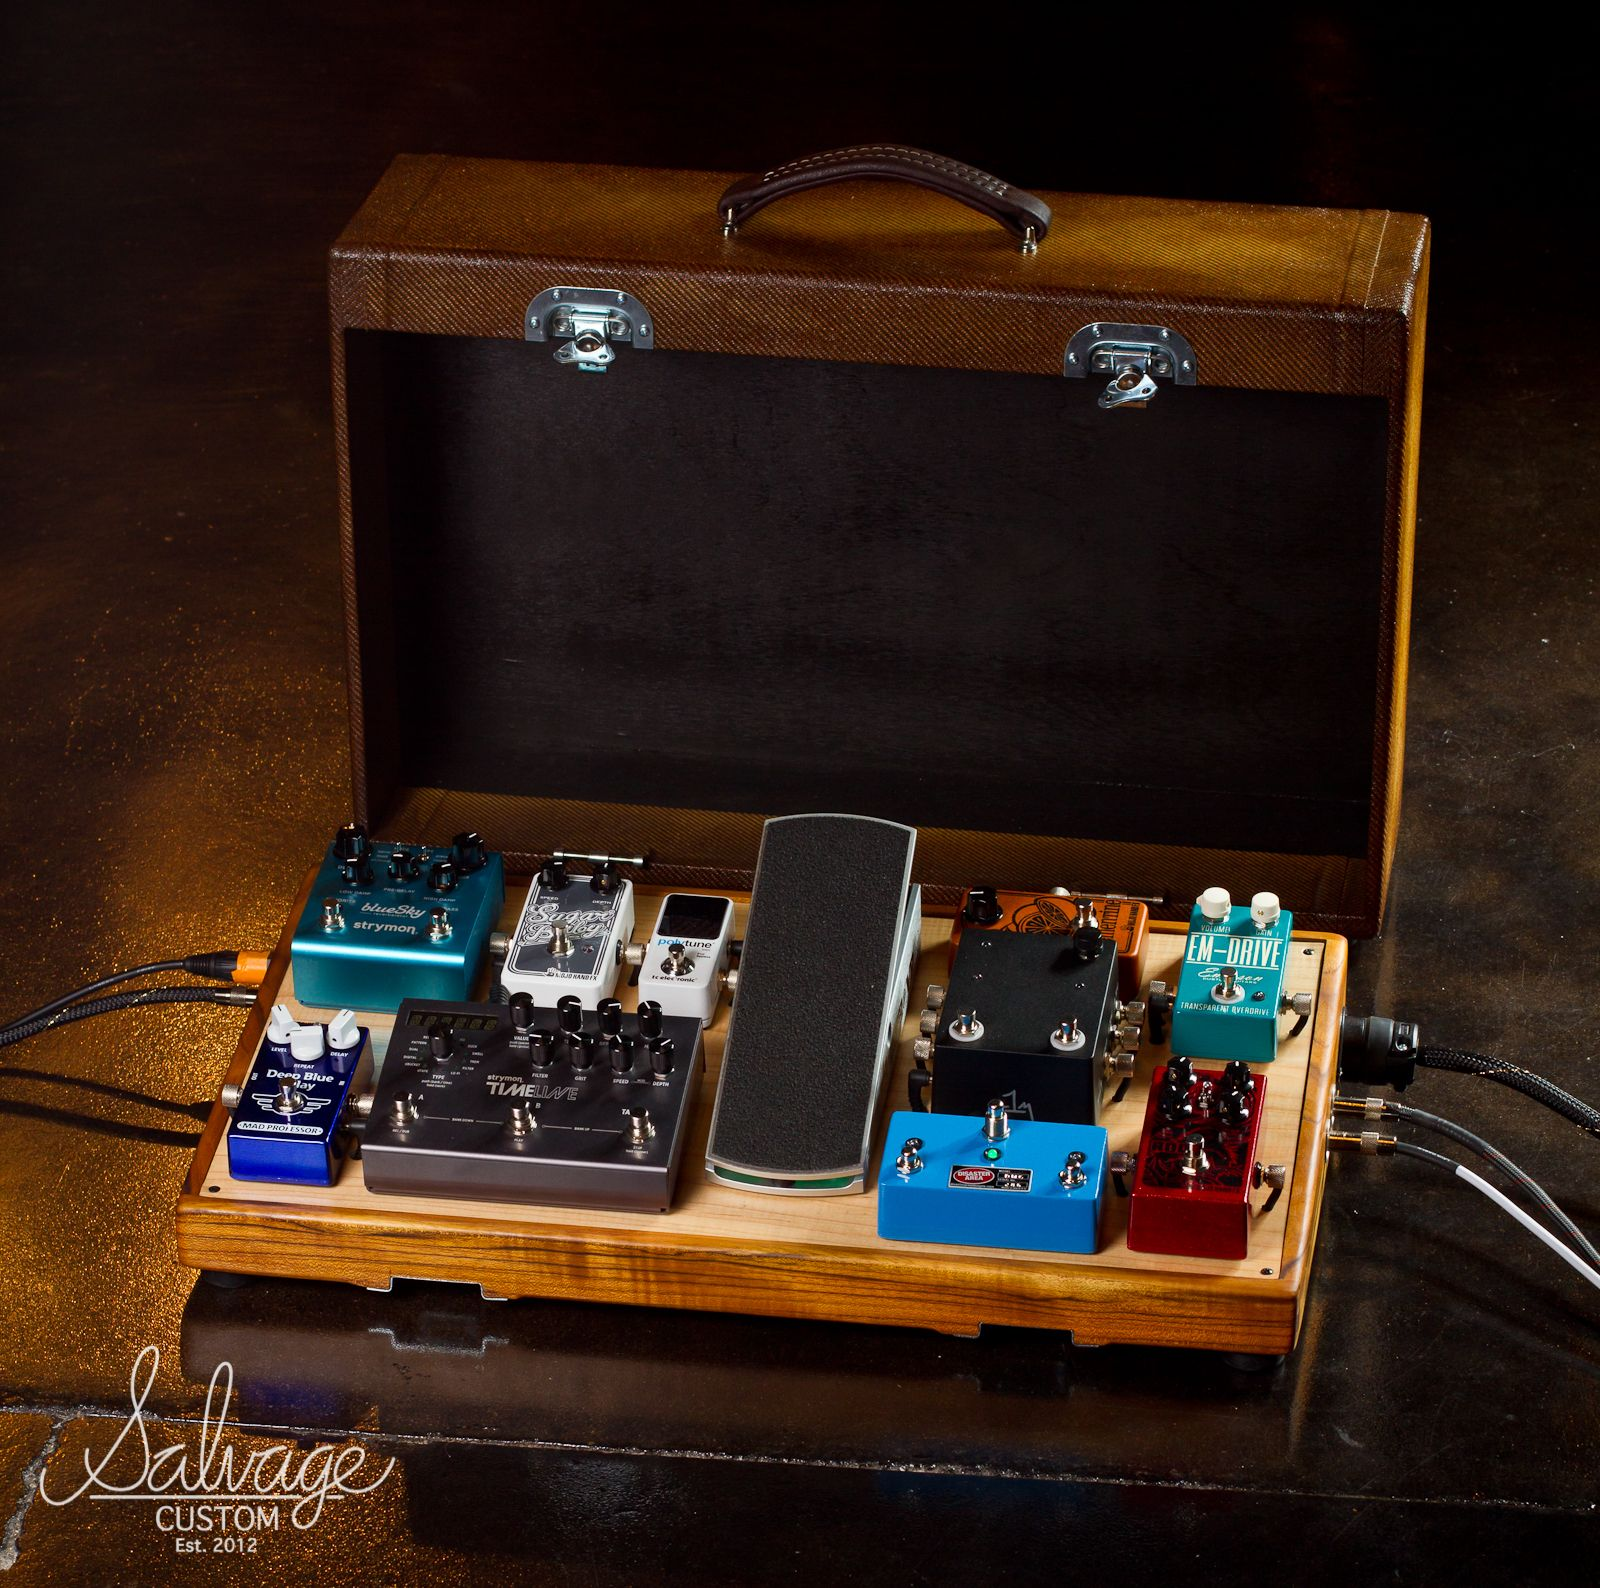 Salvage Custom Pedalboards And Cases In Use On Stage Pedalboard IdeasAcoustic GuitarsPedal